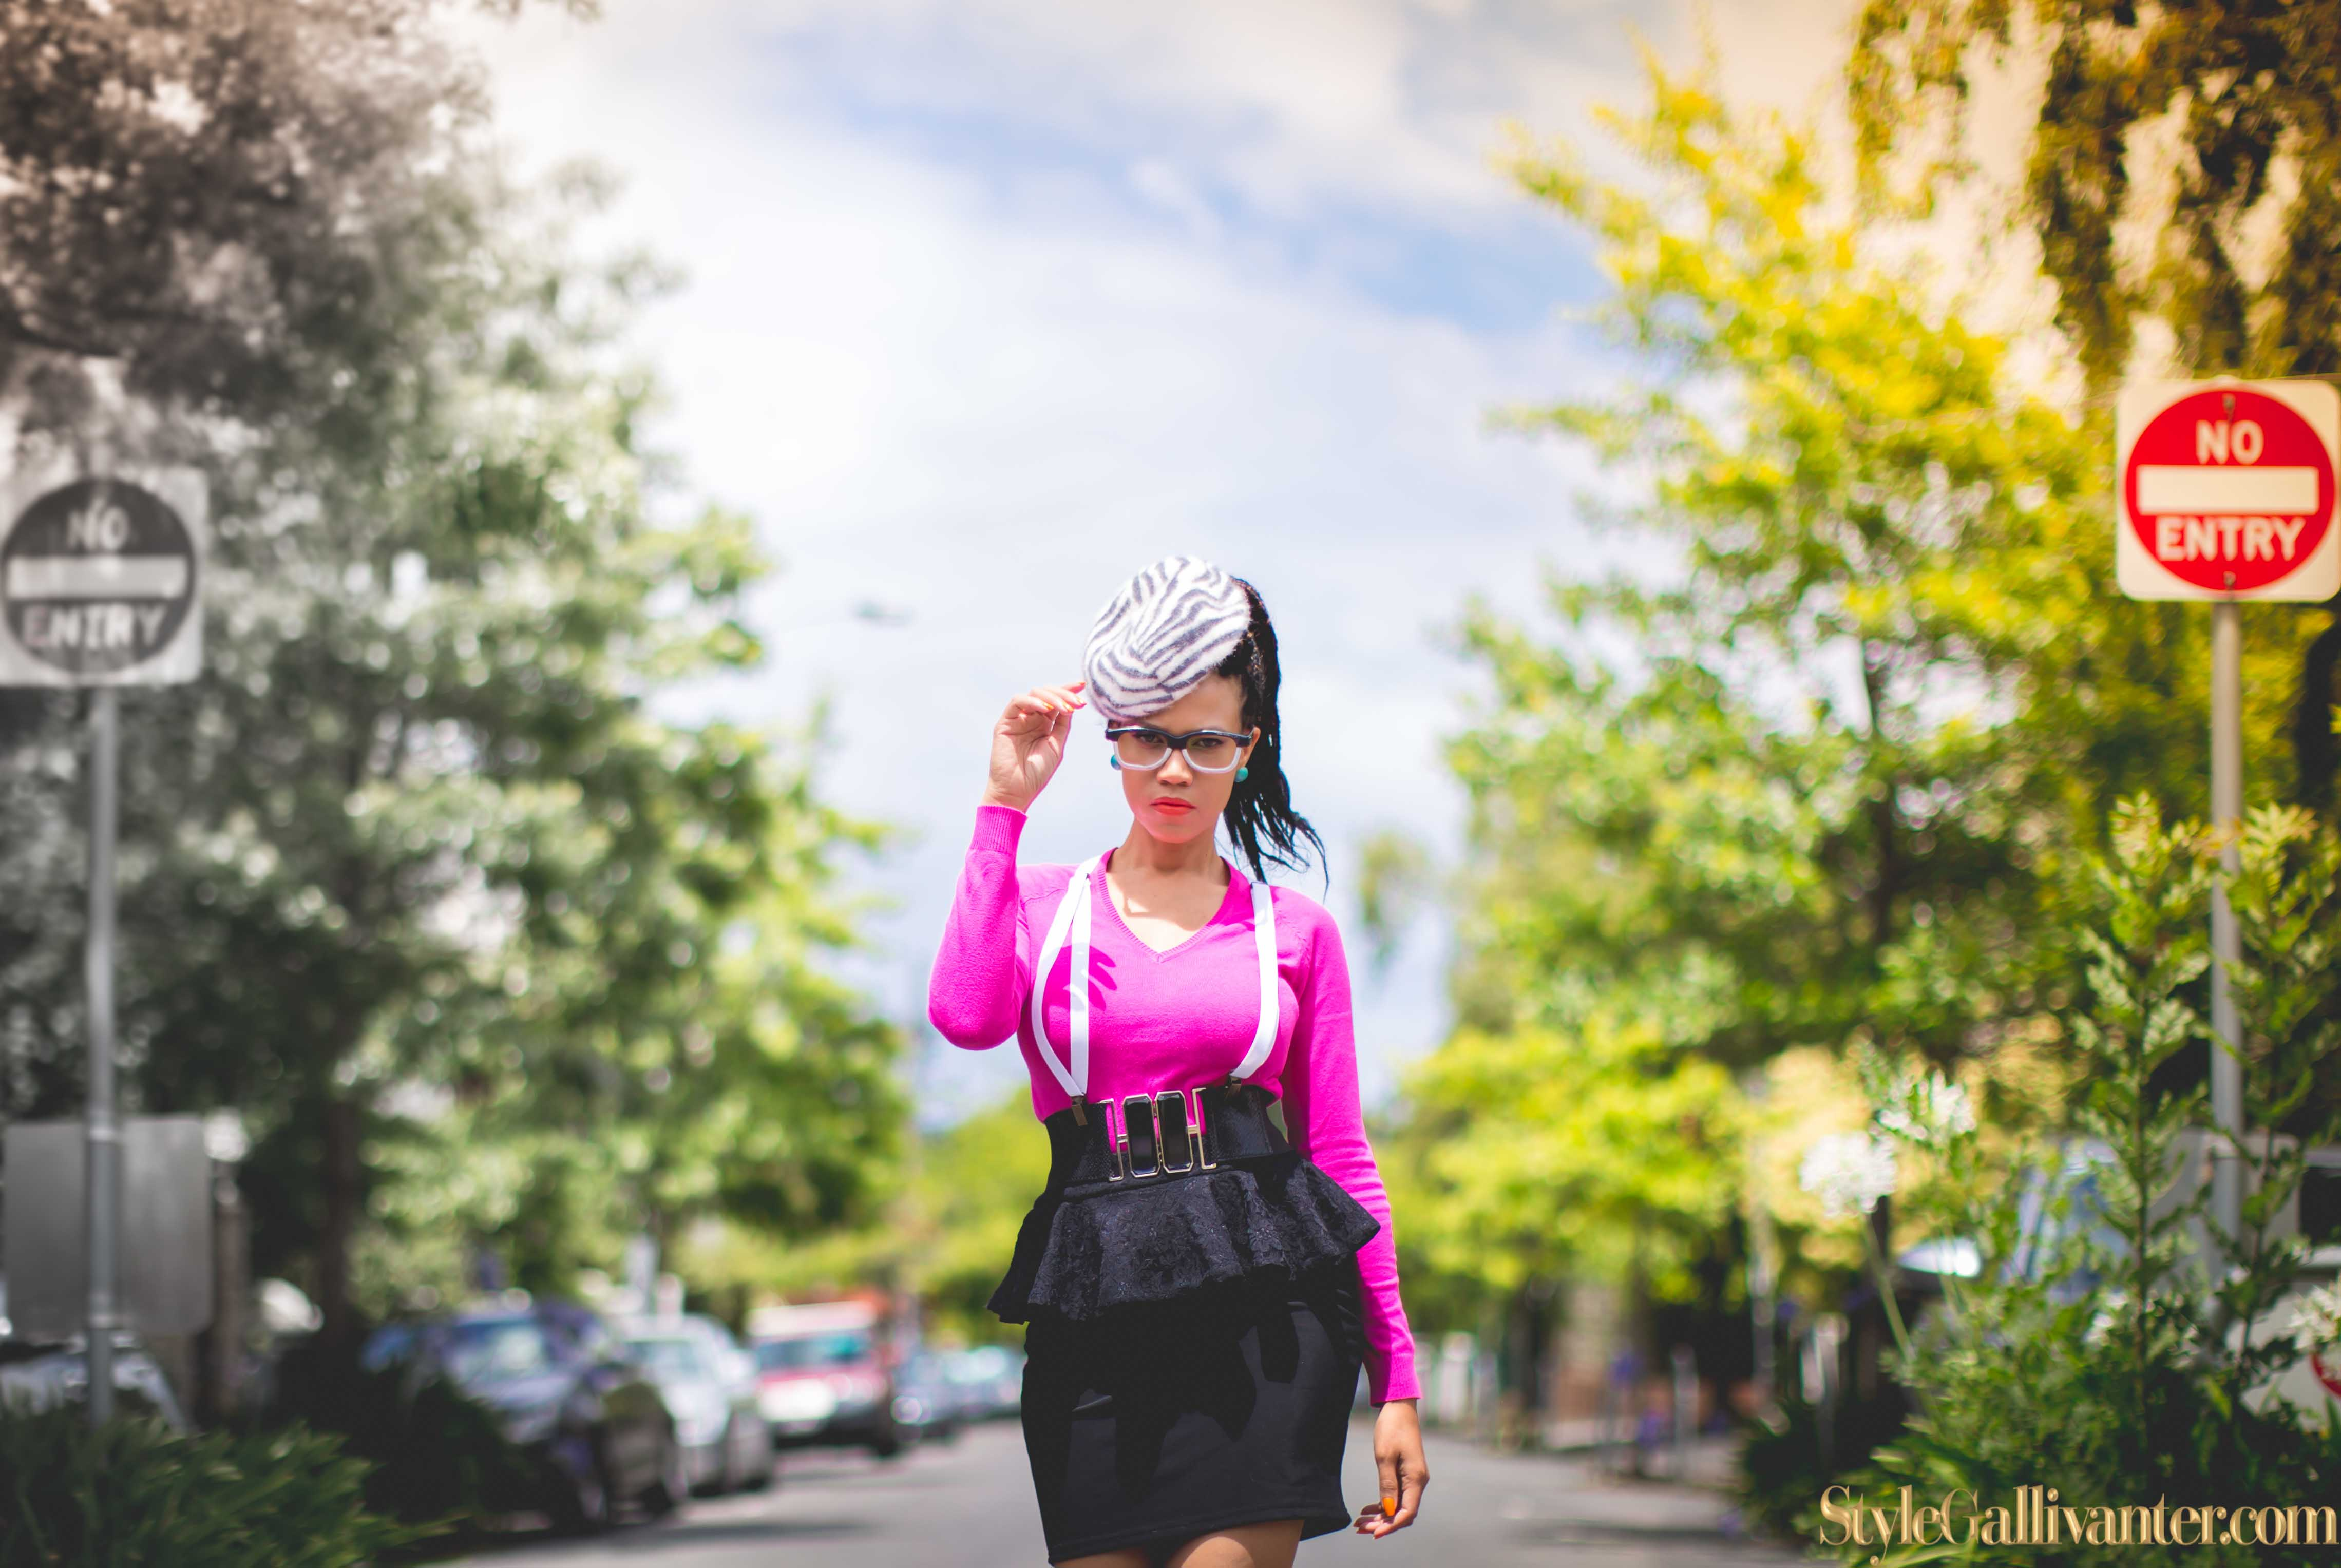 pink-and-black_melbourne's-most-interesting-fashion-bloggers_australia's-african-fashion-bloggers_africa's-best-fashion-blogger_valentine's-day-outfit-ideas_easy-box-braids-styles-6